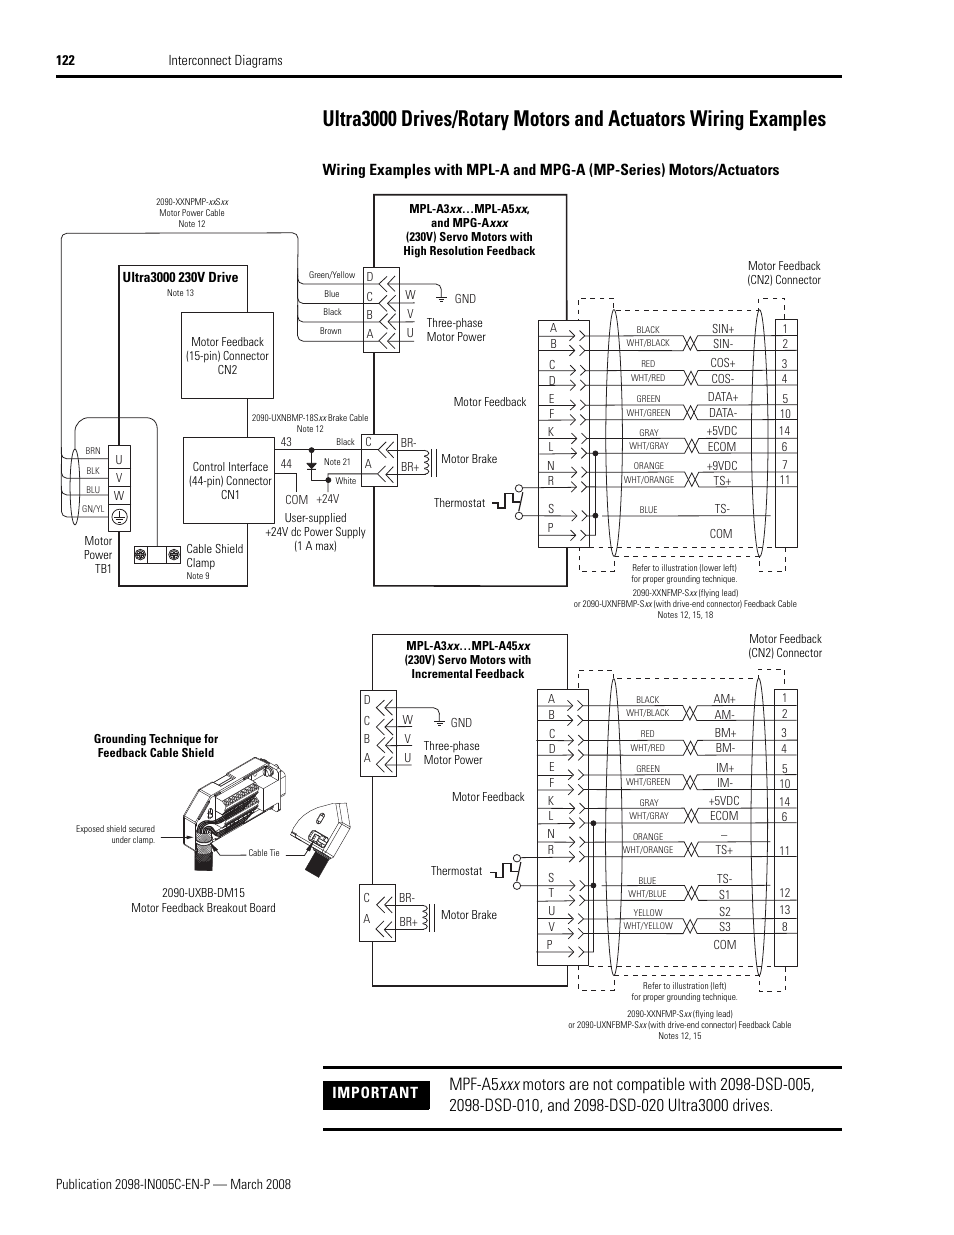 Wiring diagram for 82 041 rockwell motor wiring data ultra3000 drives rotary motors and actuators wiring examples wiring diagram for 82 041 rockwell motor swarovskicordoba Choice Image